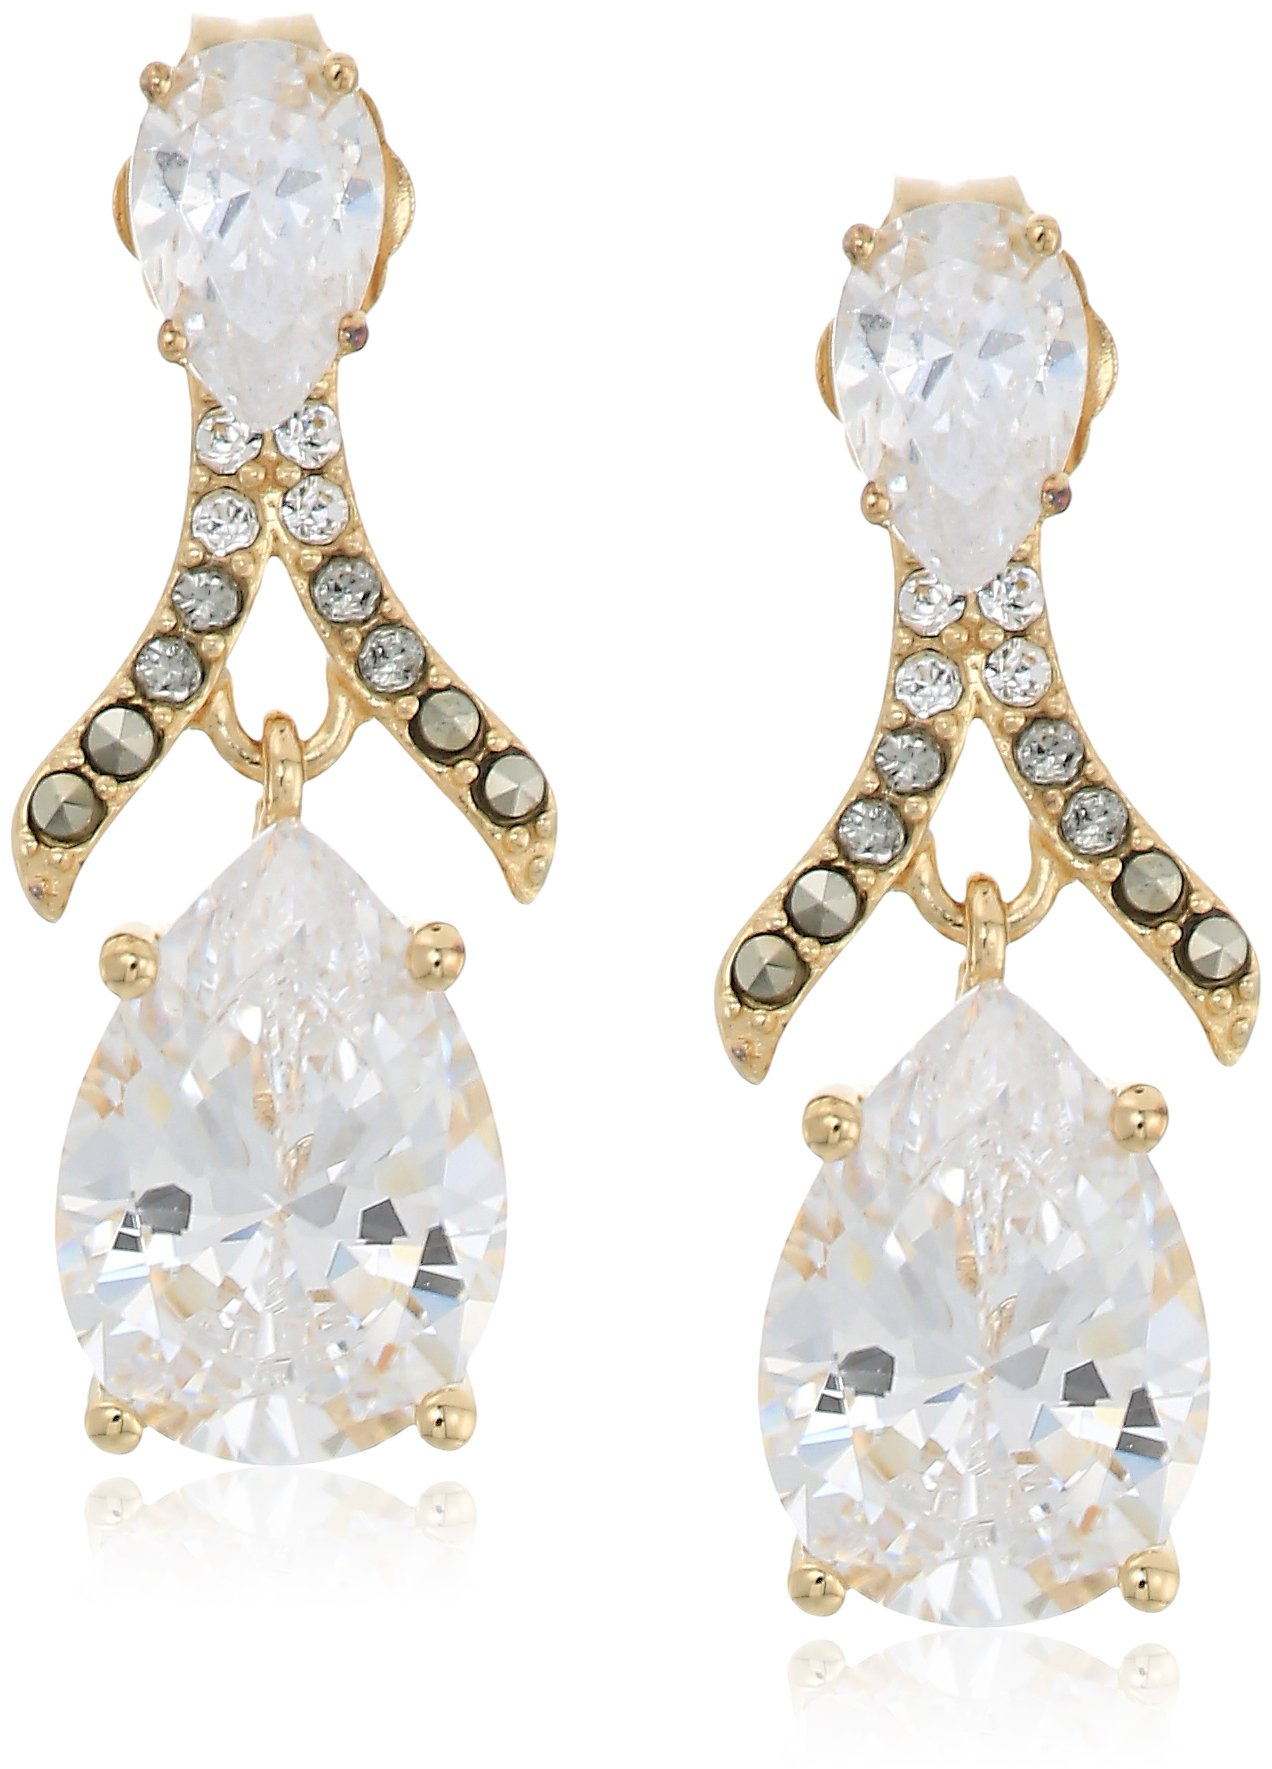 judith jack 10k gold plated sterling silver and swarovski marcasite post drop earrings